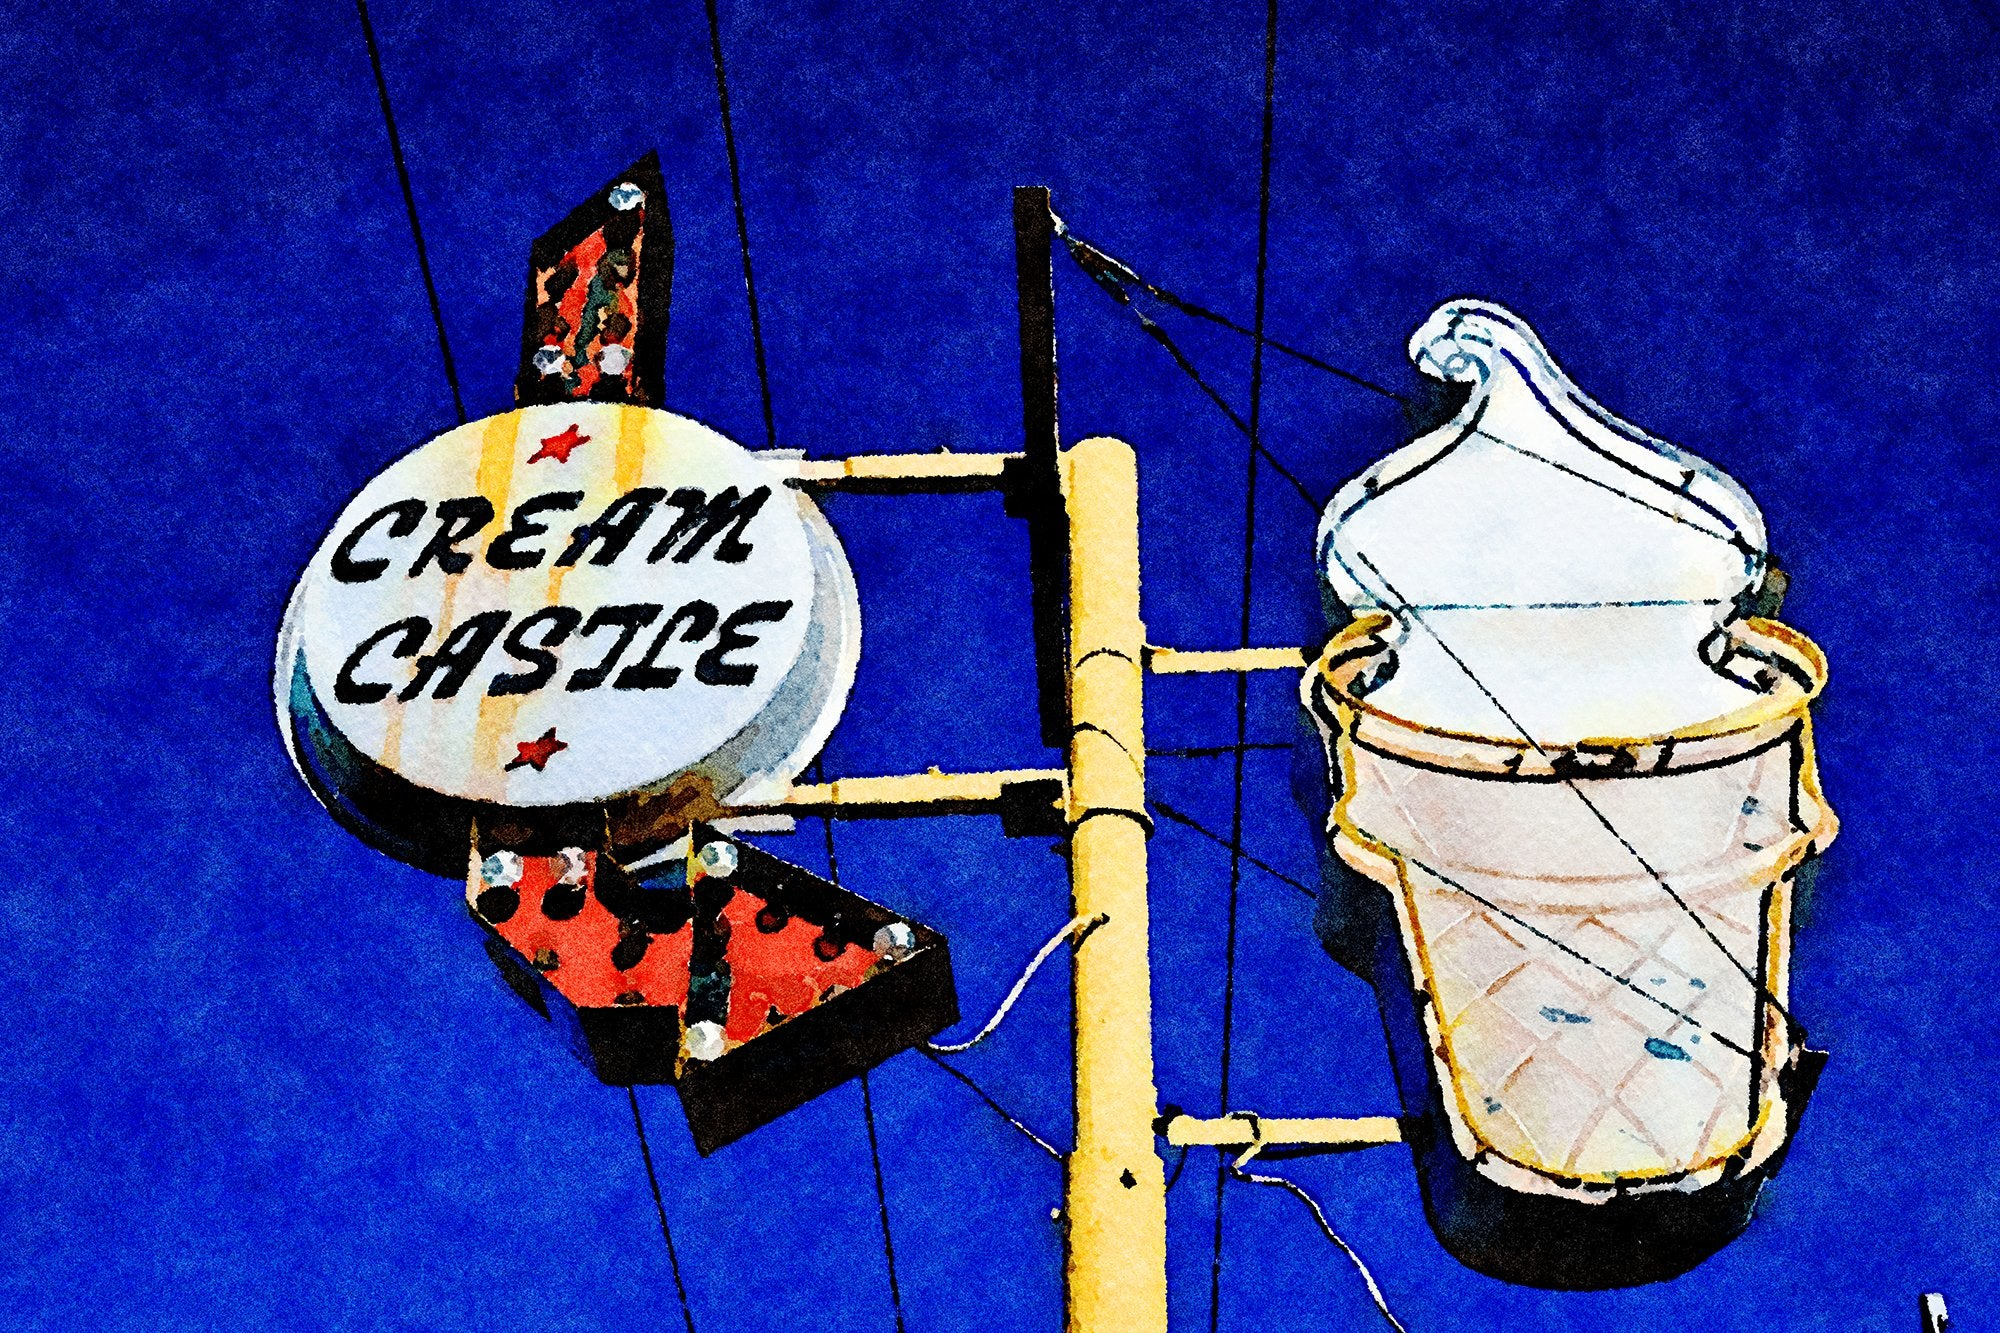 Cream Castle Ice Cream Sign, West Malone, Sikeston, Missouri, Reworked, Series 1